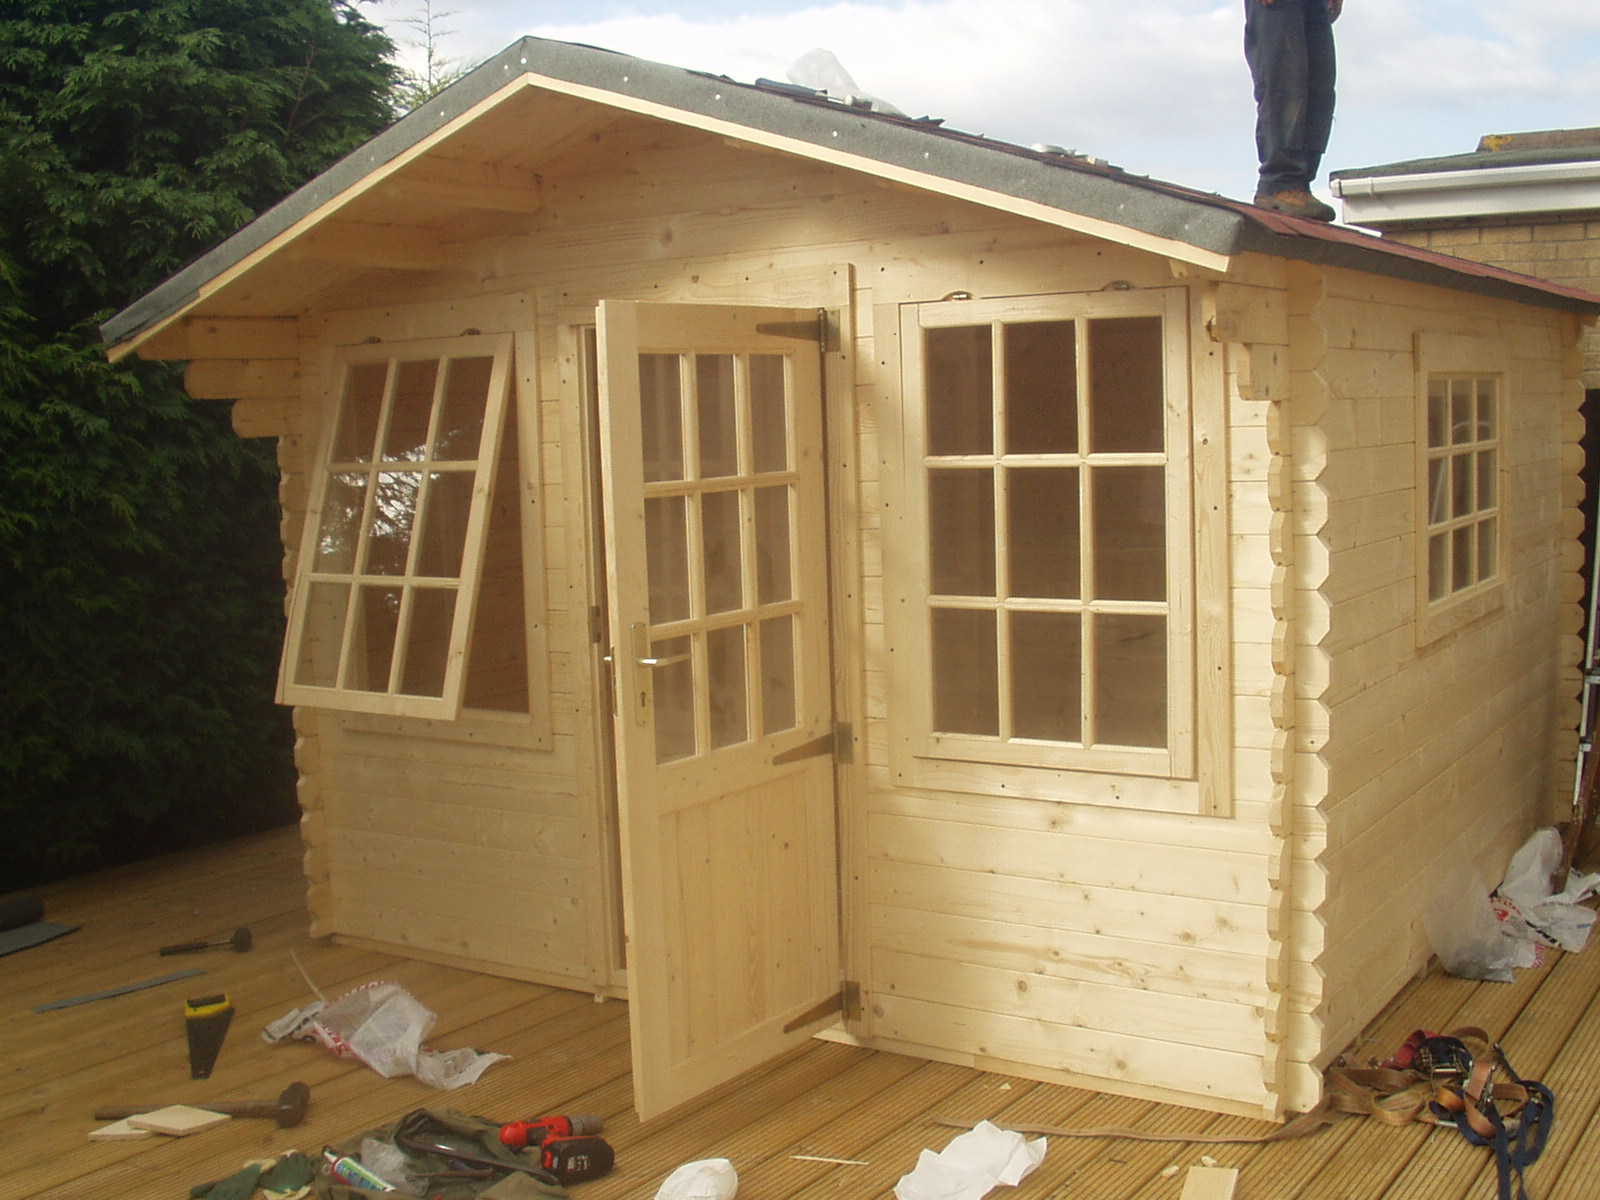 Design Schuur Shed Diy Build Backyard Sheds Has Your Free Tool Shed